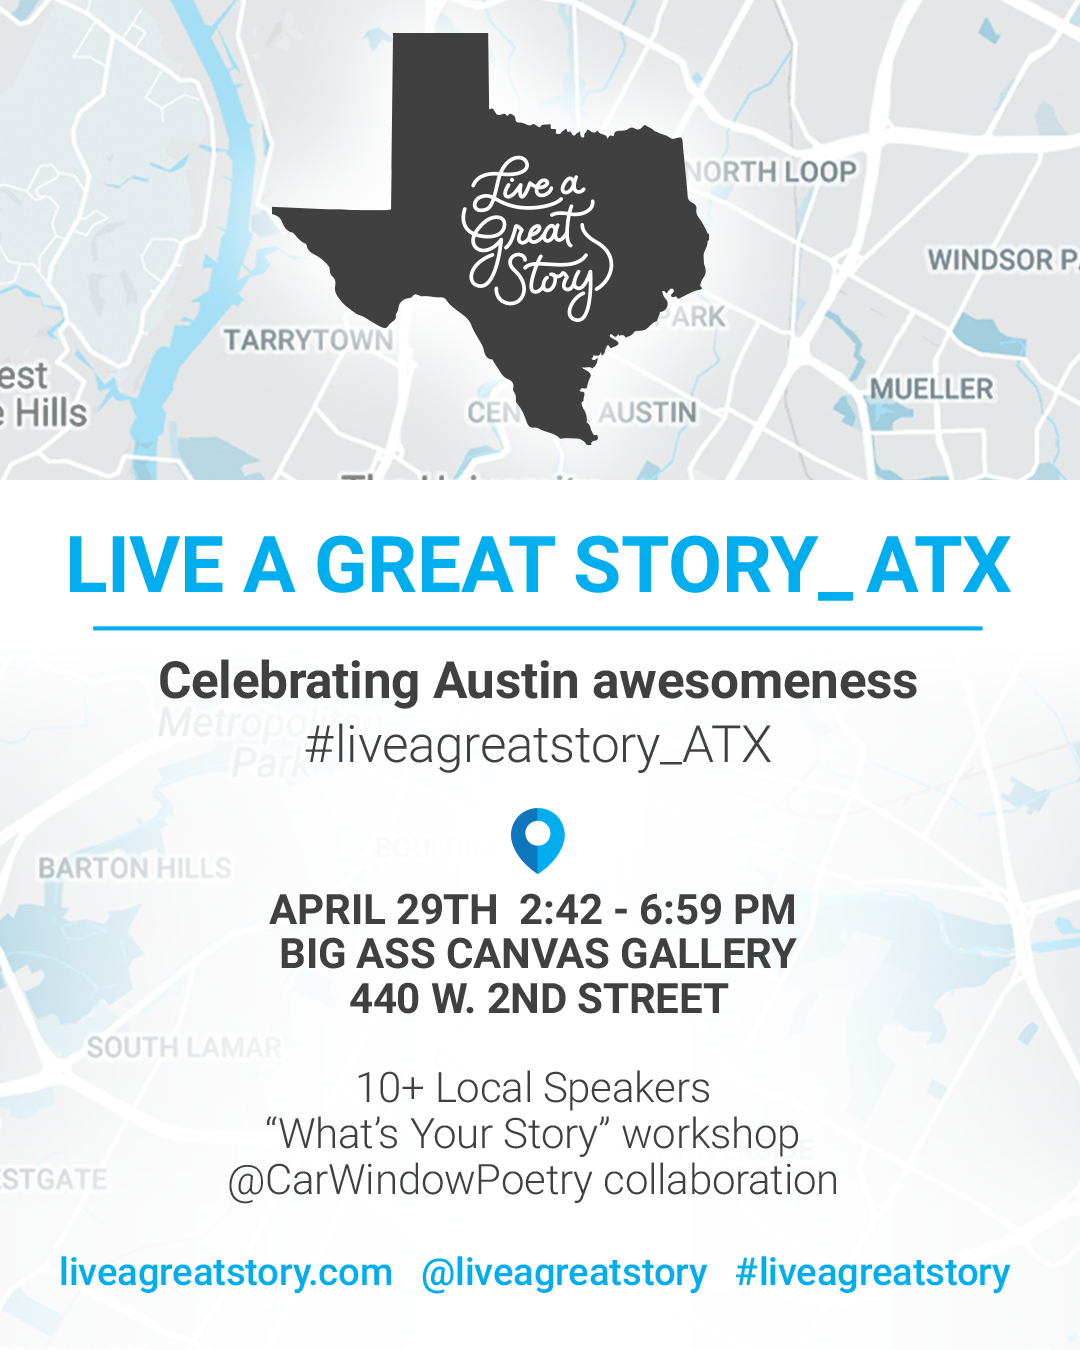 LIVE A GREAT STORY ATX